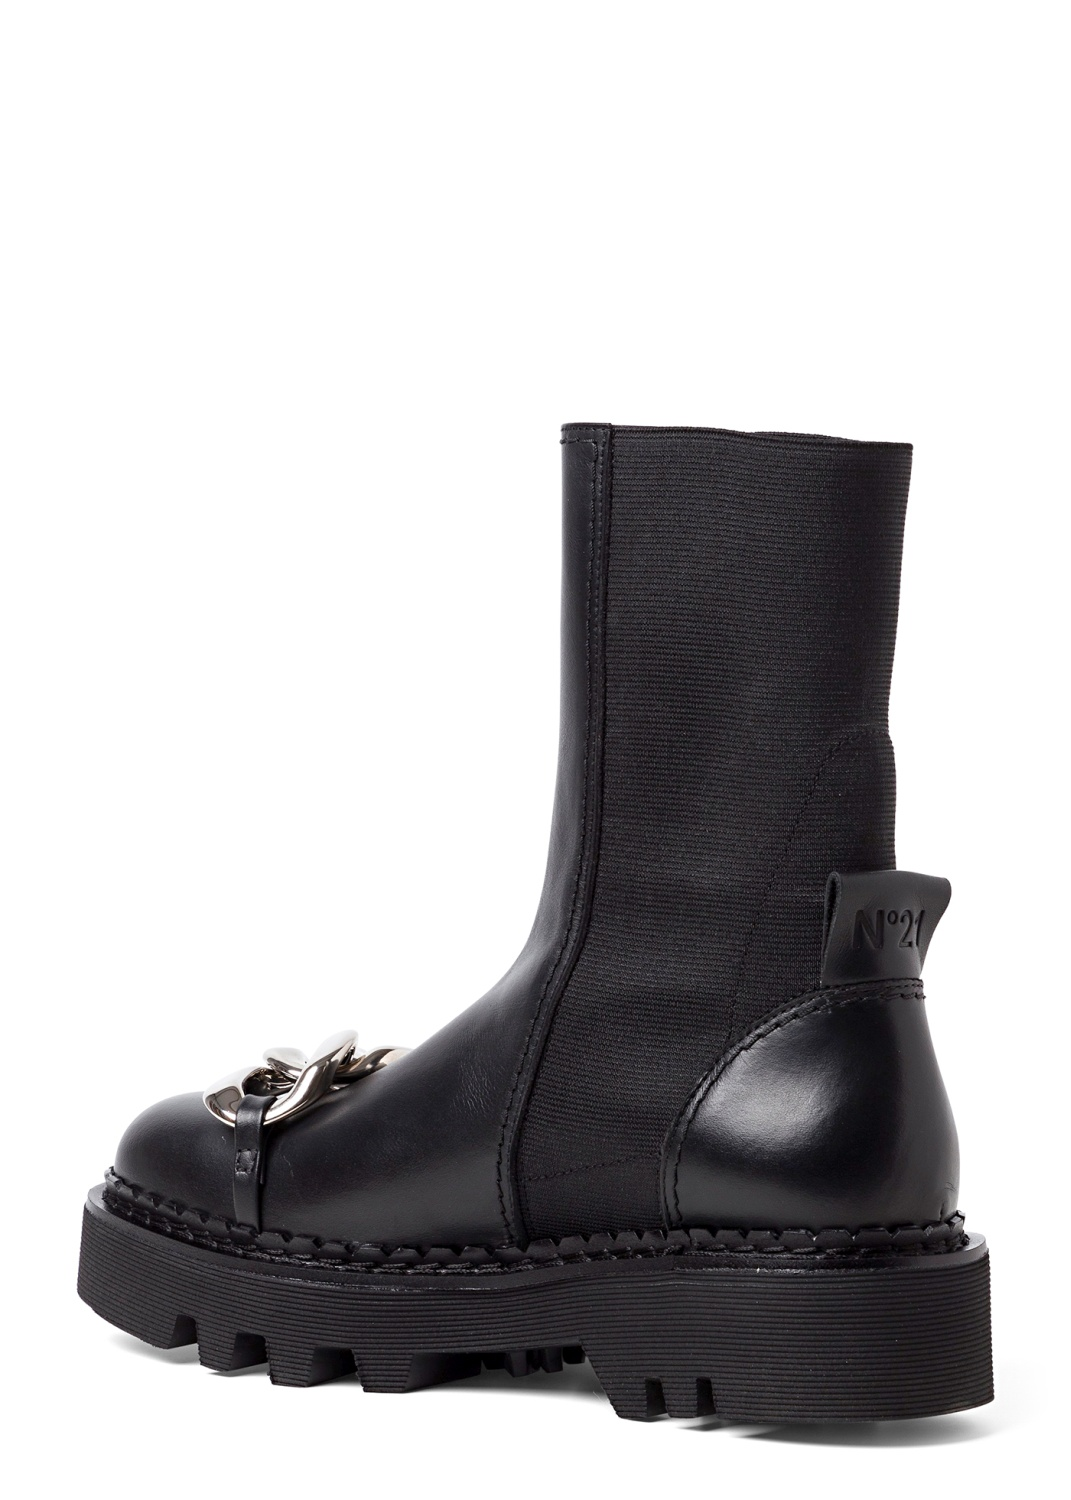 Chelsea Boot Chain image number 2